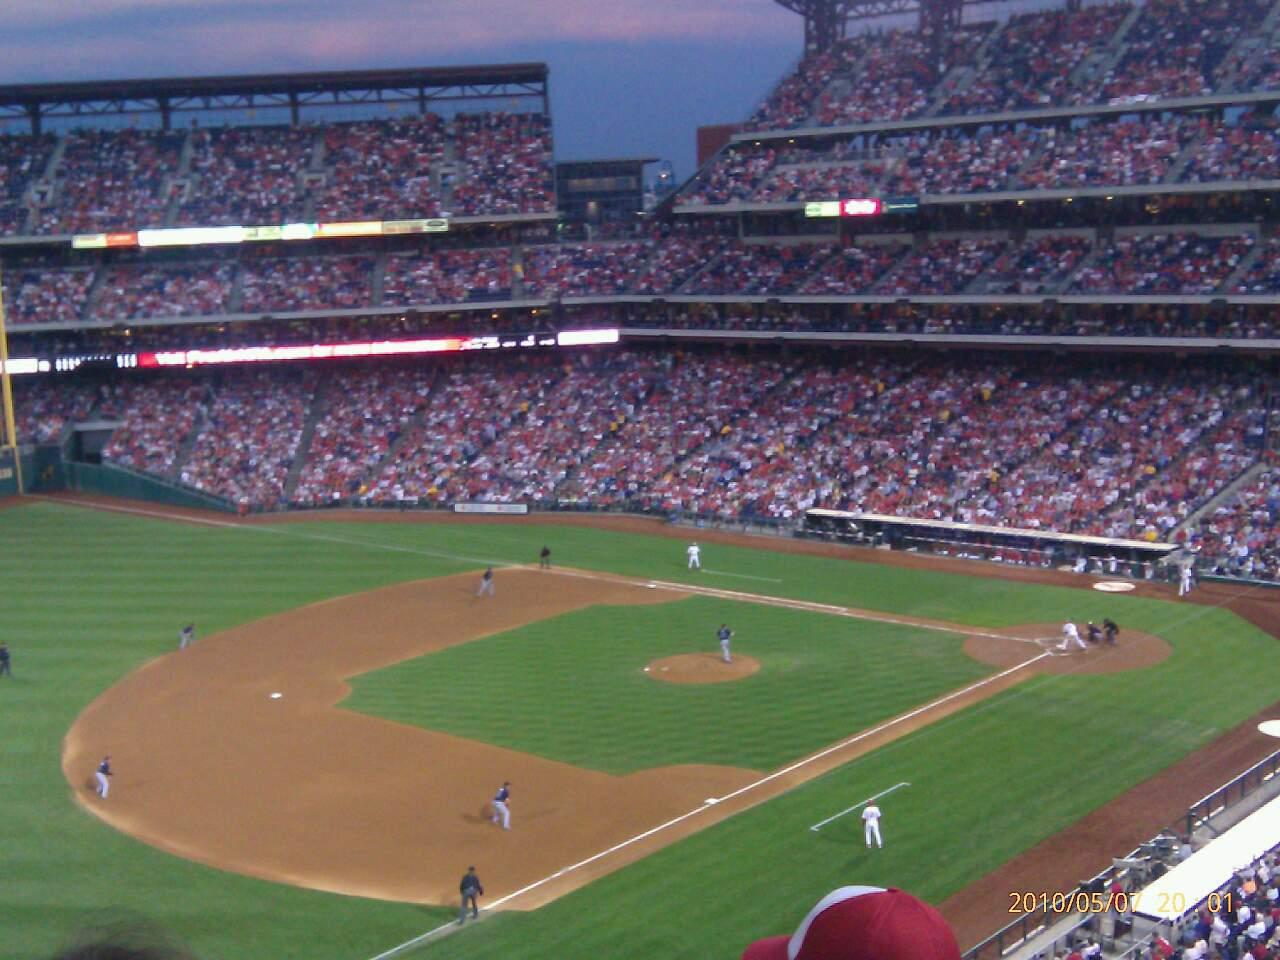 Citizens Bank Park Section 328 Row 6 Seat 4